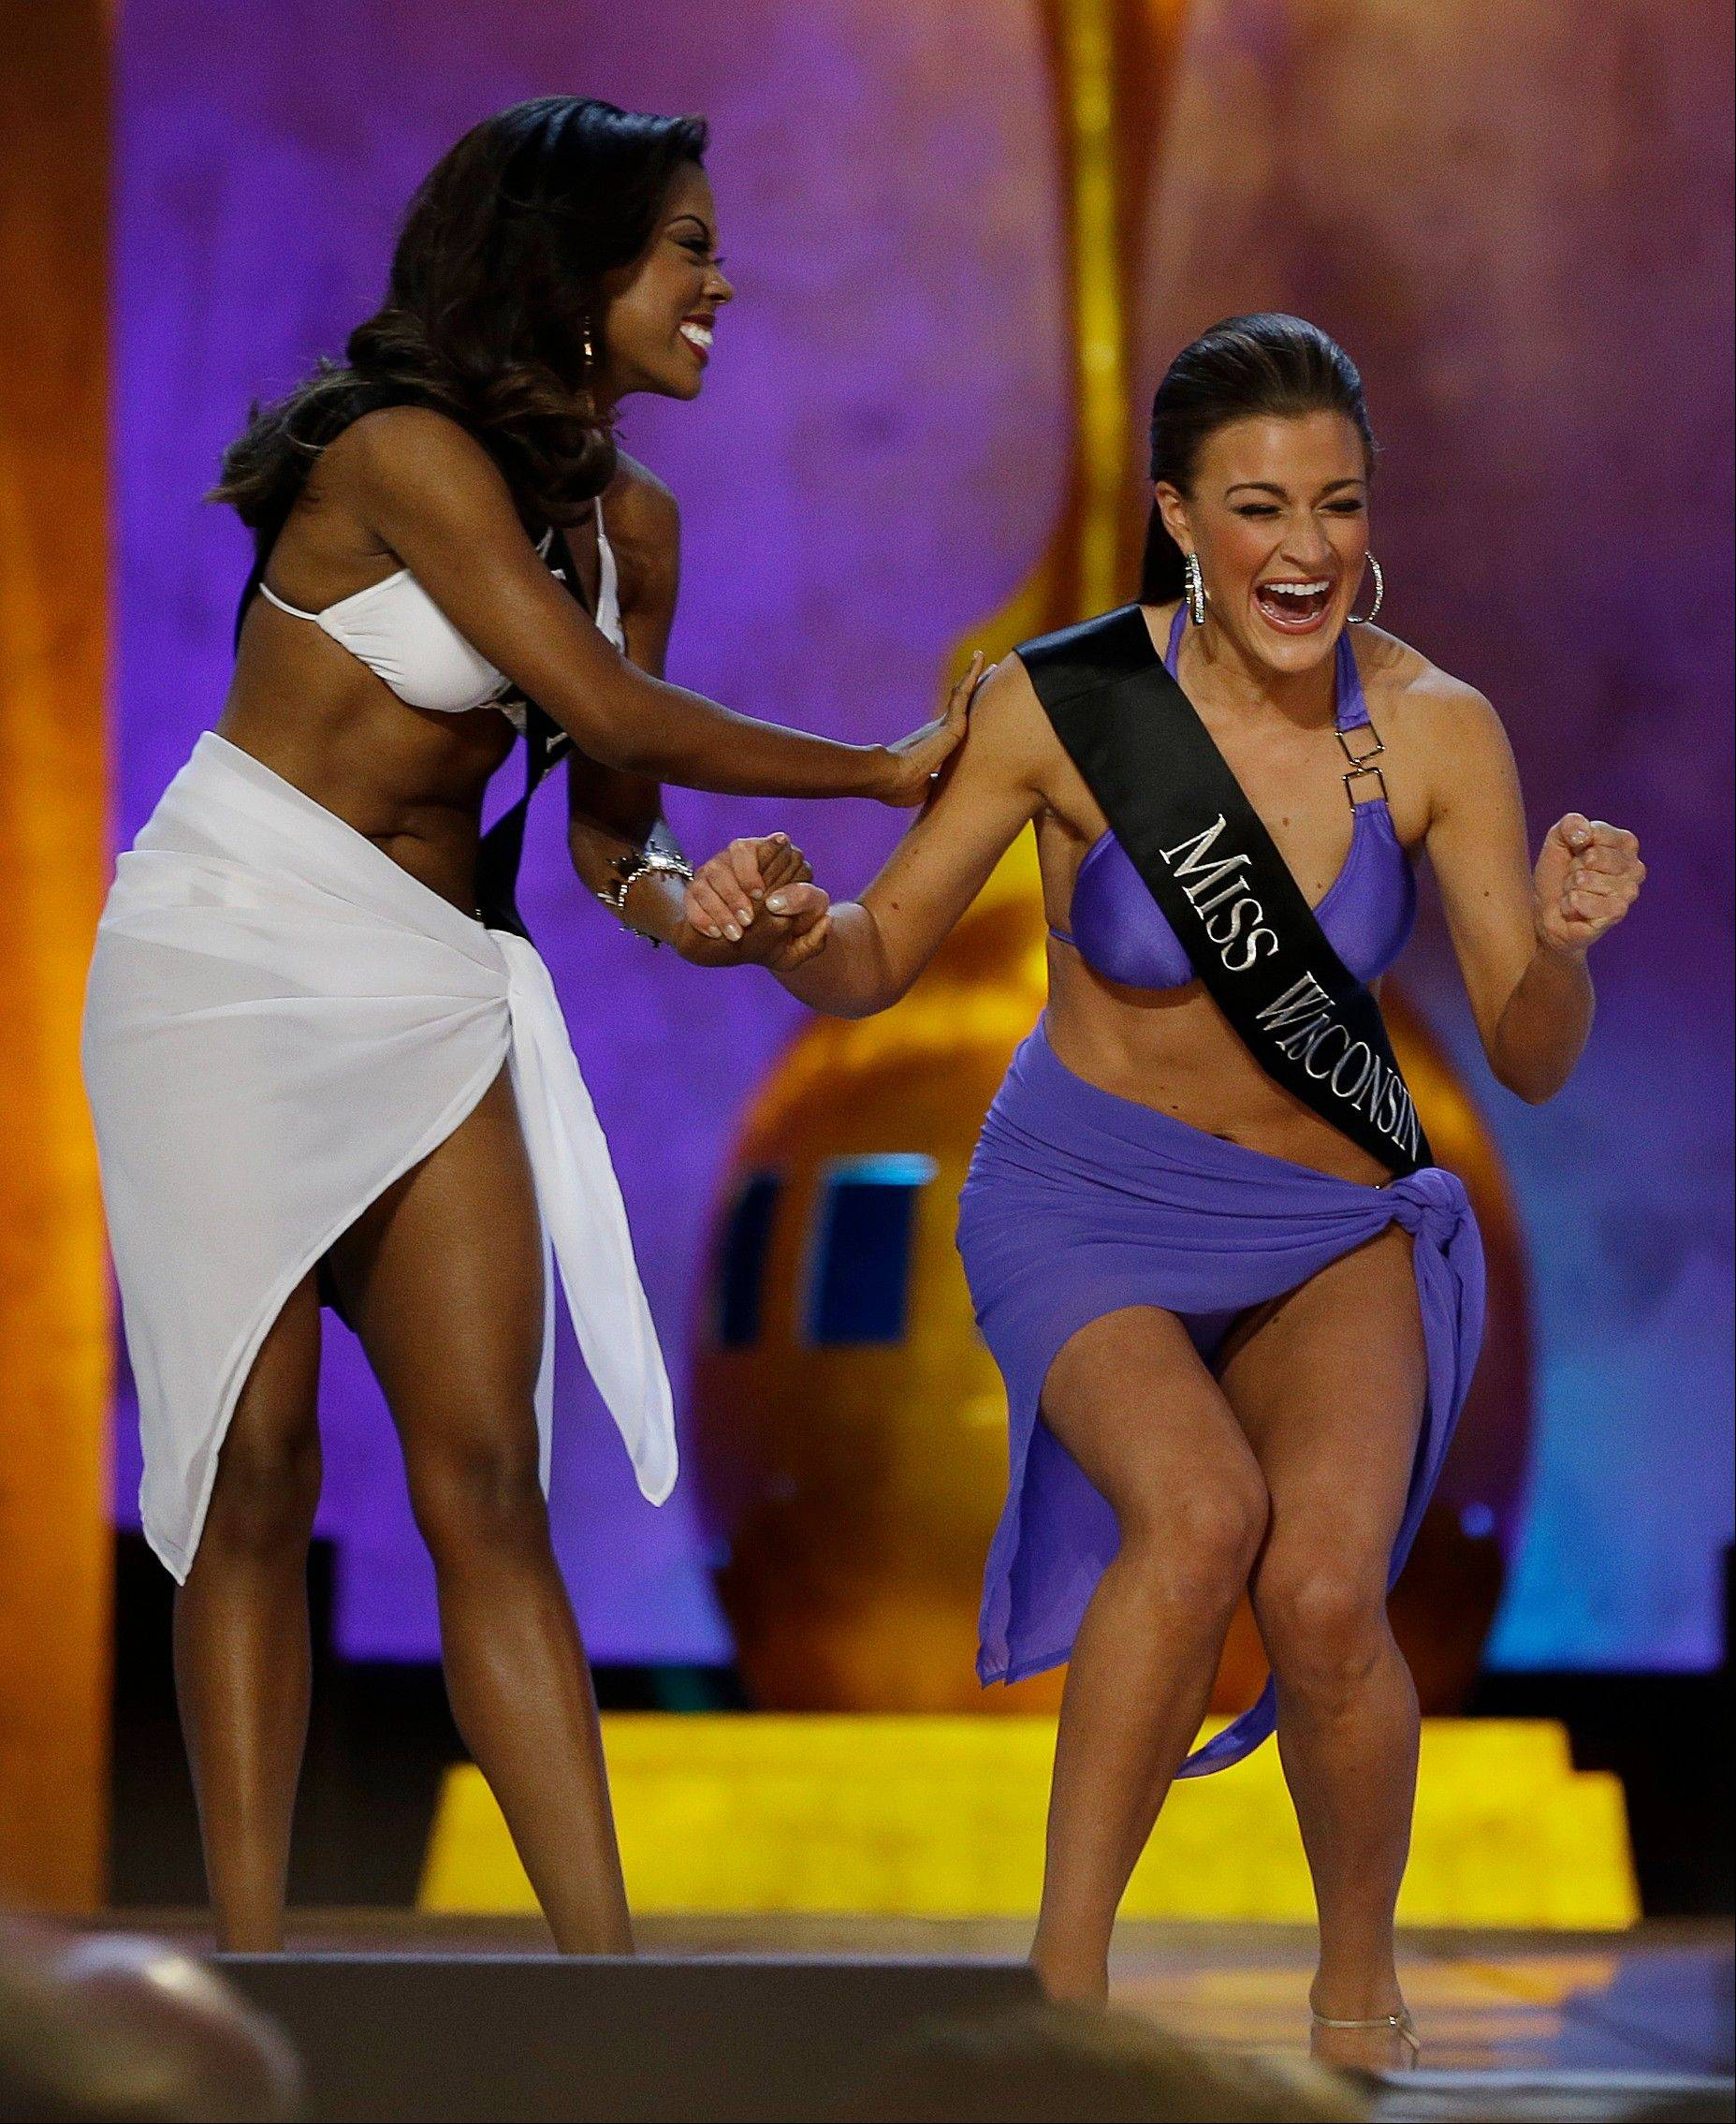 Miss Wisconsin Paula Mae Kuiper, right, reacts after finding out she's advancing beyond the lifestyle round as Miss Texas Ivana Hall congratulates her during the Miss America 2014 pageant, Sunday, Sept. 15, 2013, in Atlantic City, N.J.